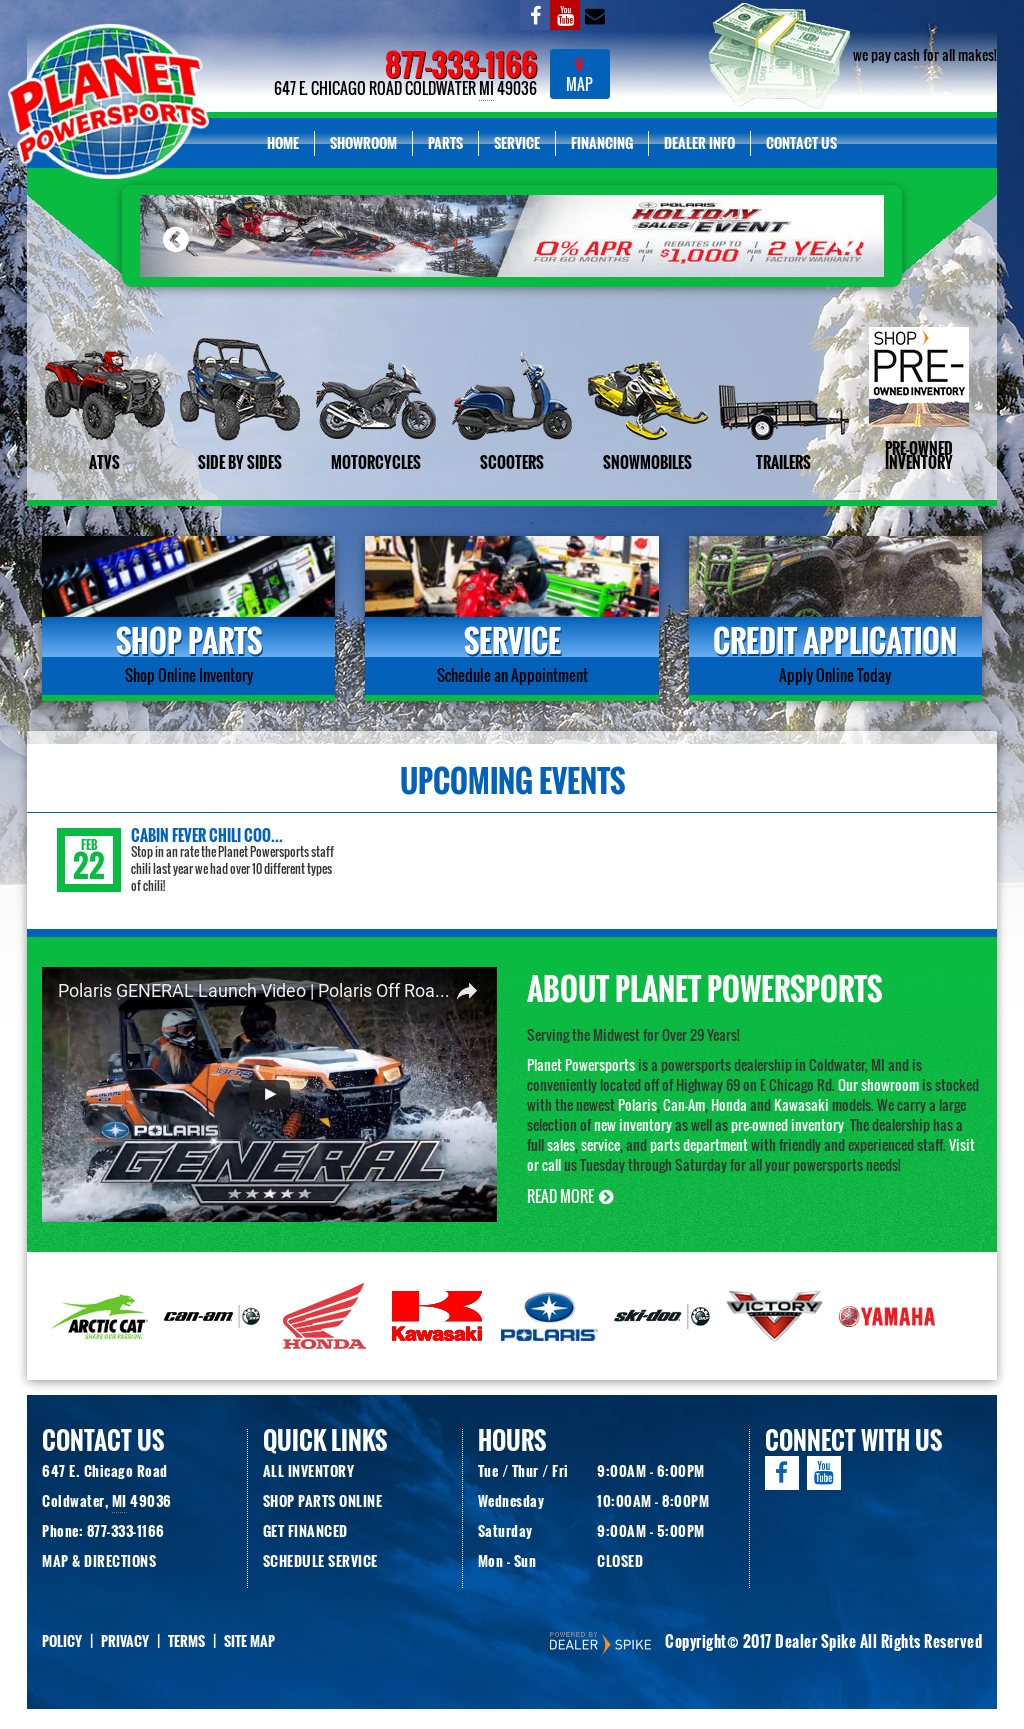 Planet Powersports Competitors, Revenue and Employees